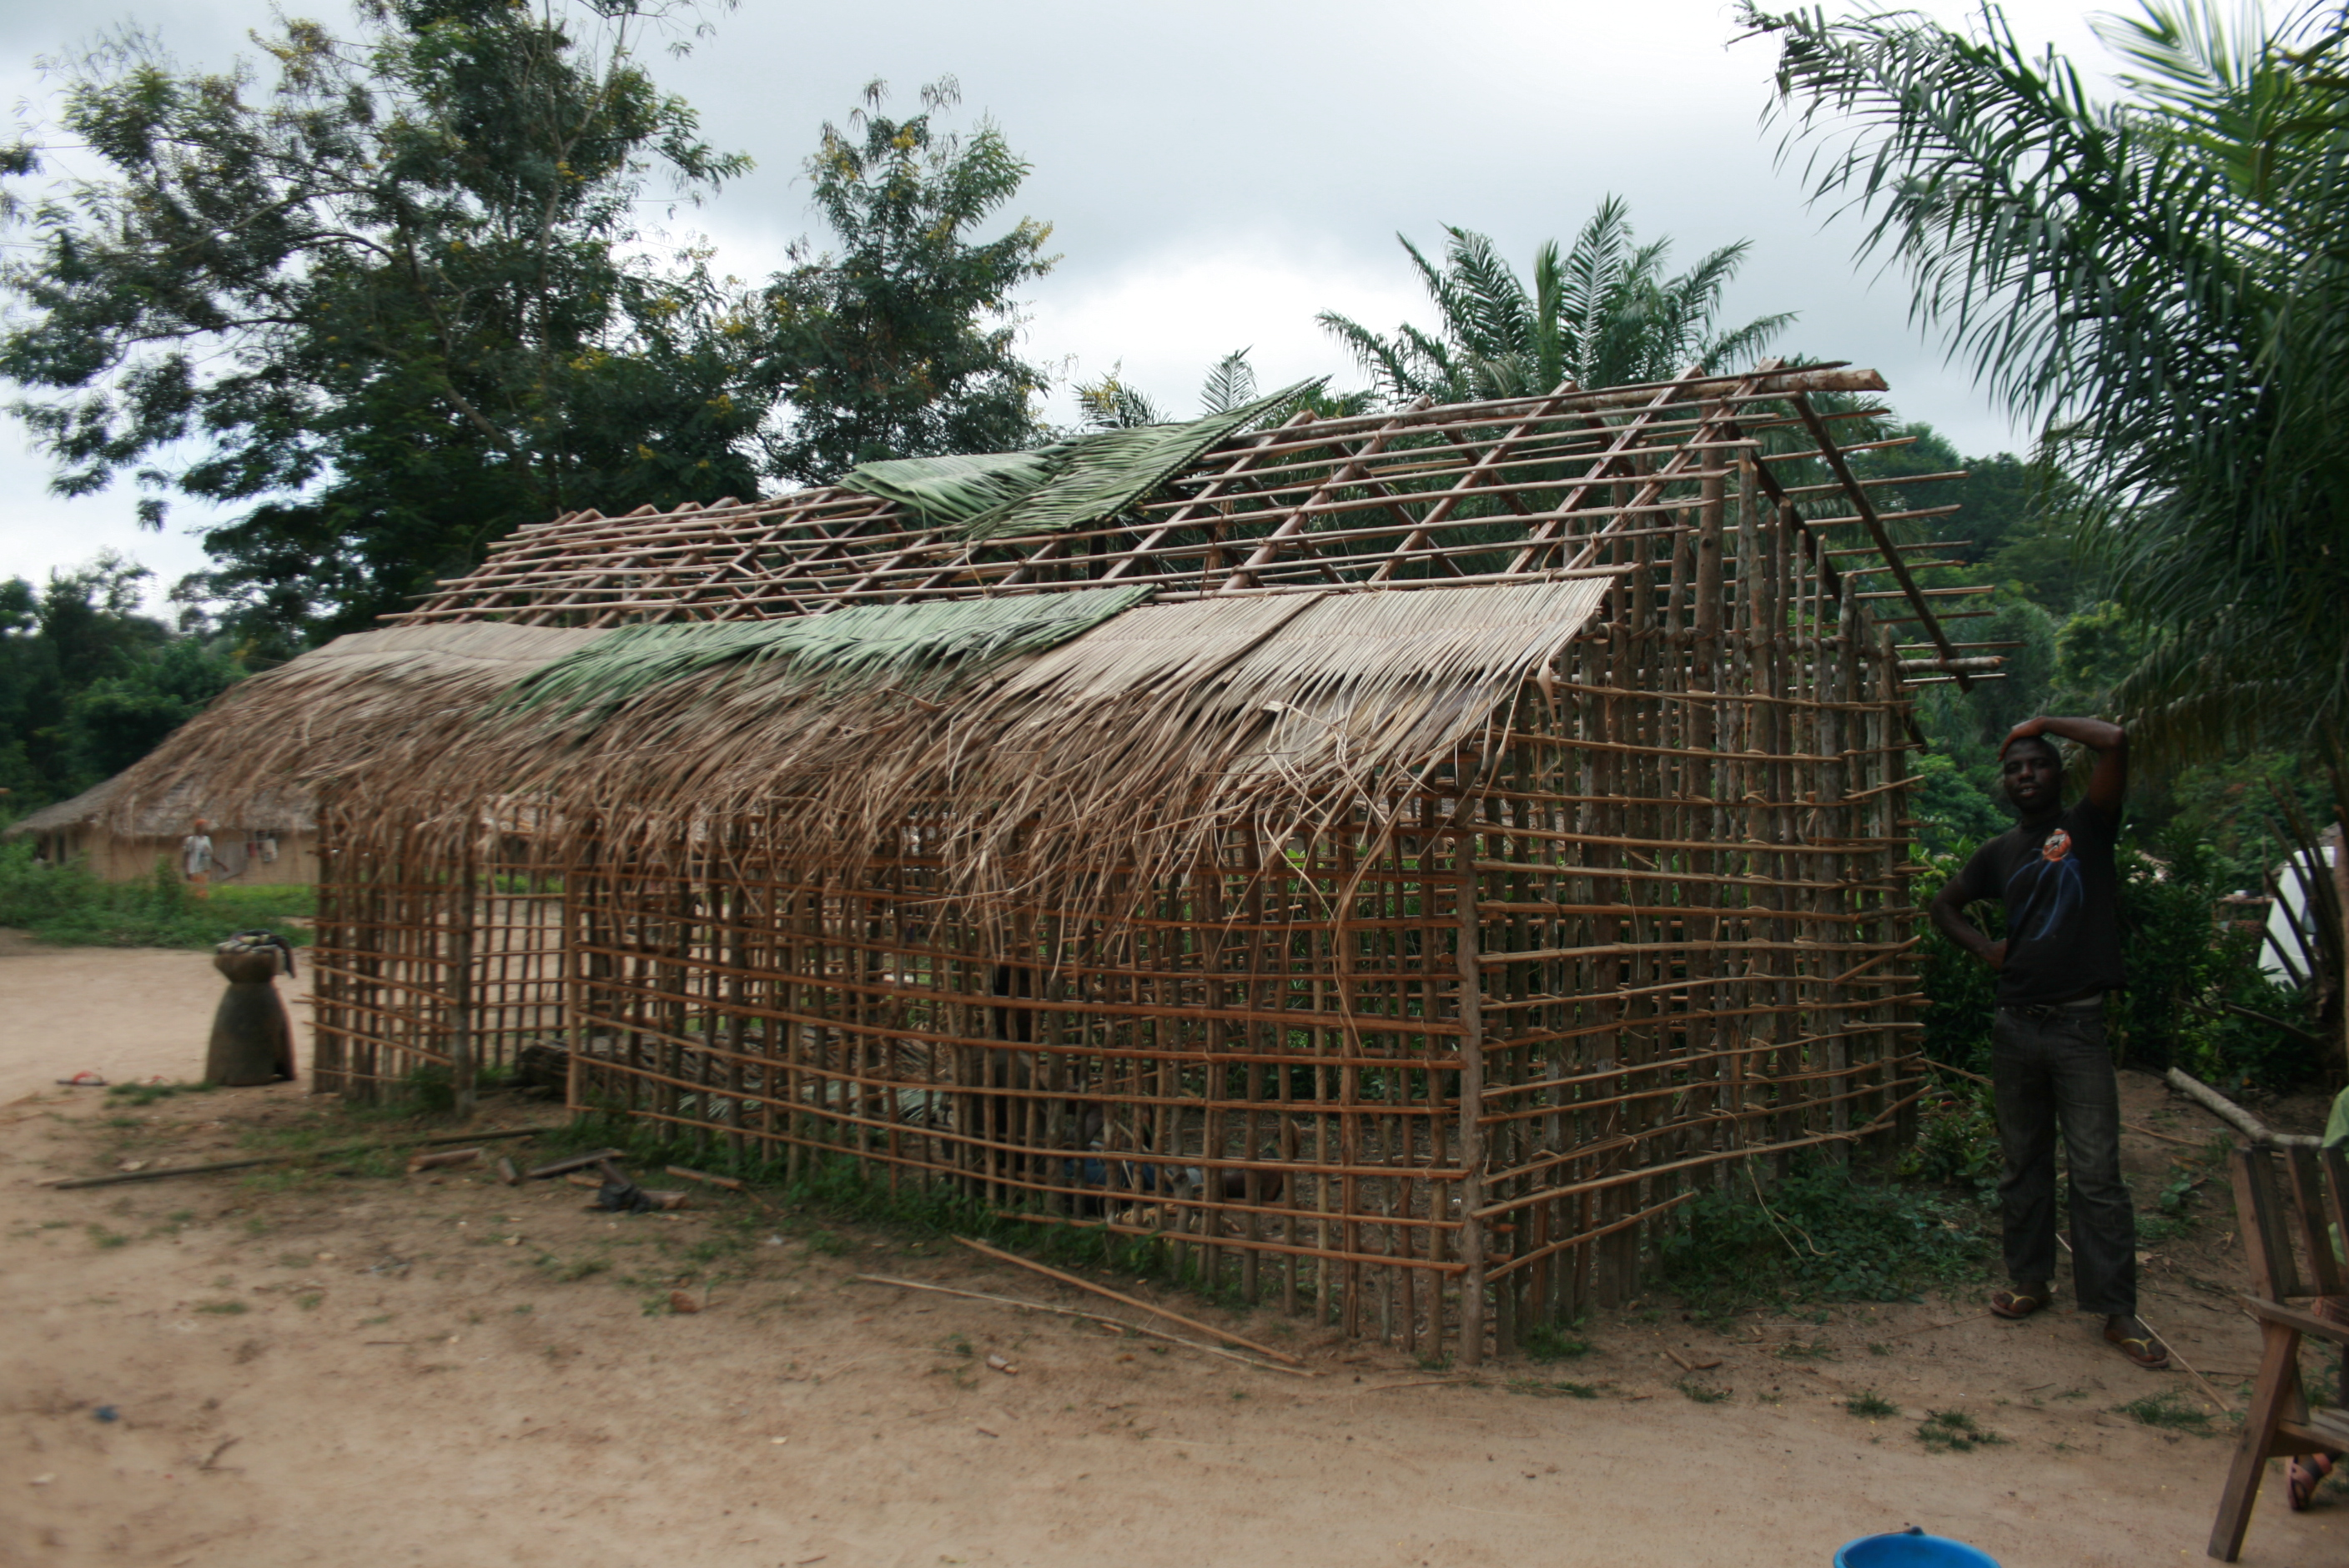 Ivoirian refugees are building houses all over Janzon Axis in Grand Gedeh, Liberia, 25km from the Ivoirian border, and 25km from Zwedru